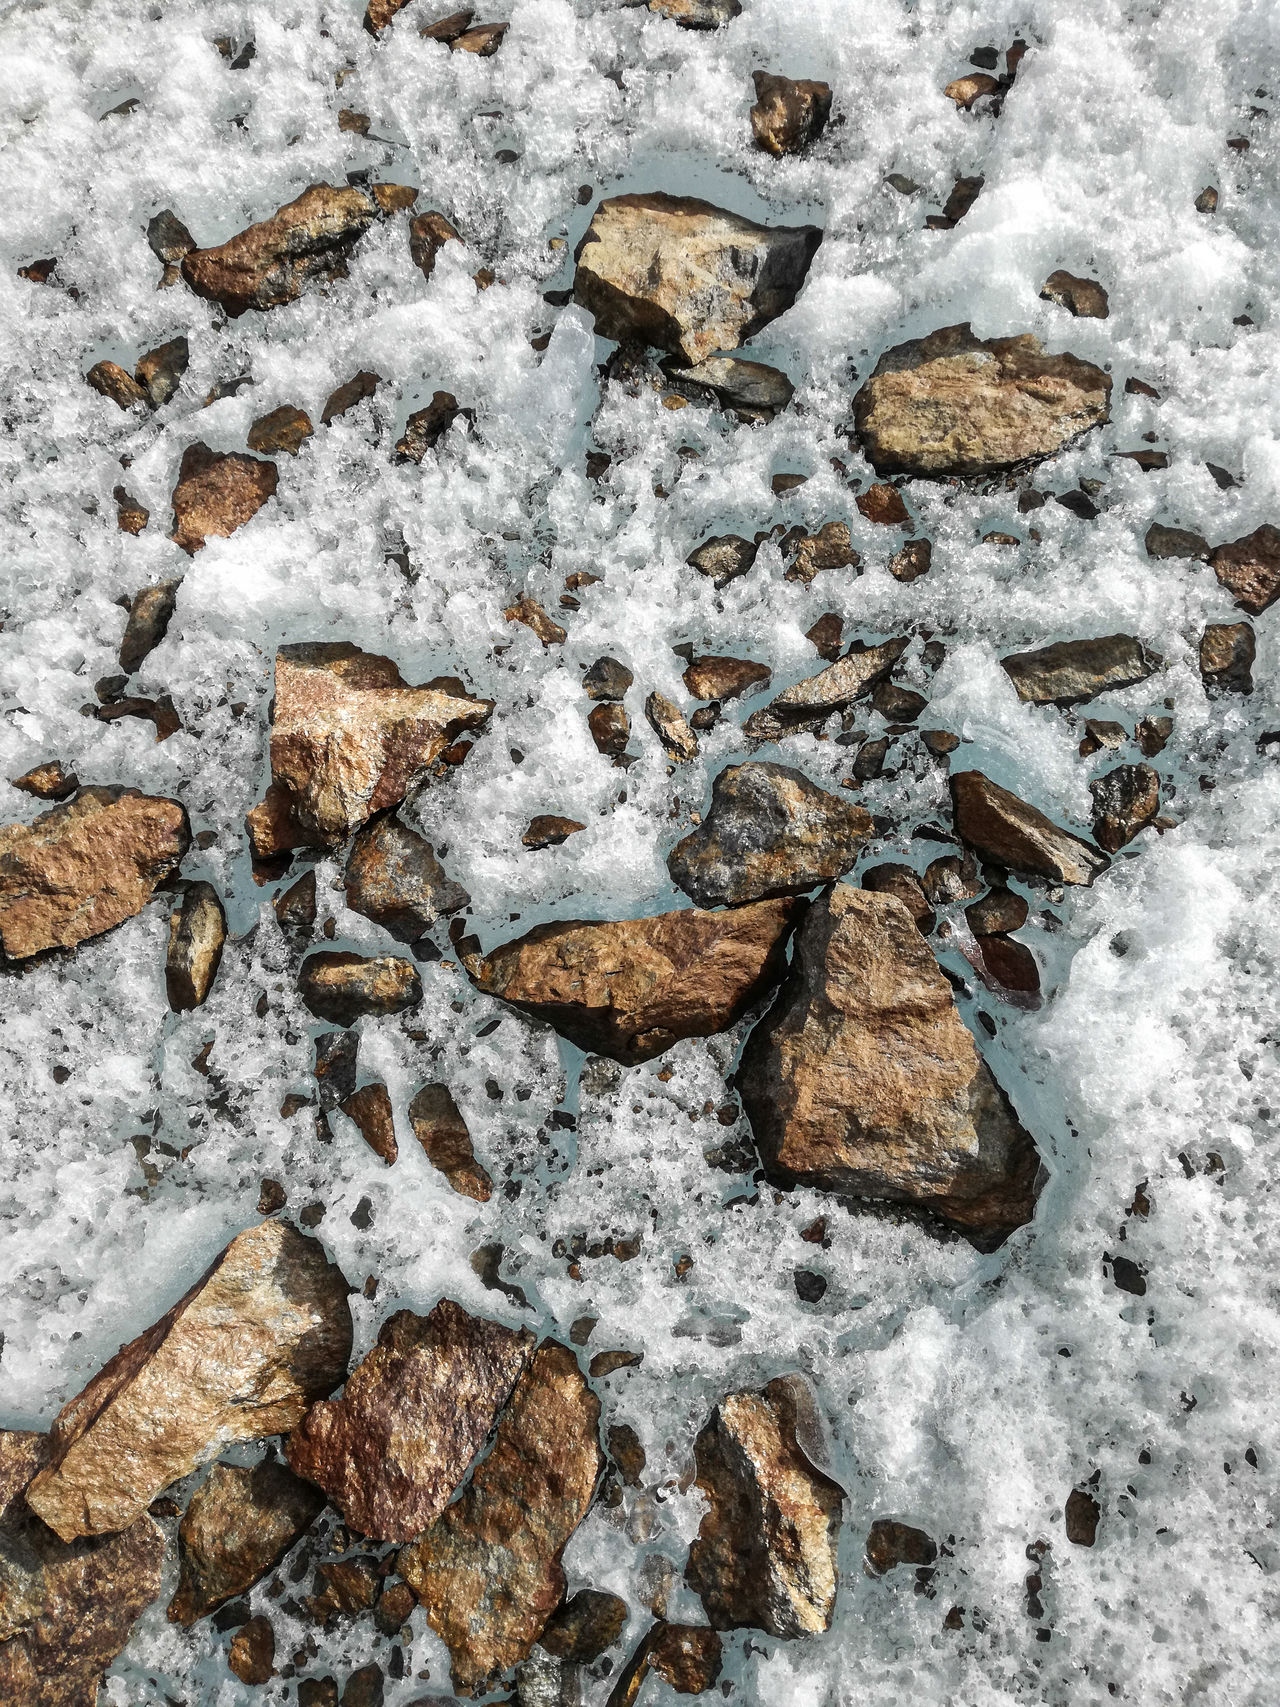 """""""the ice we are walking on"""" Animal Track Background Beauty In Nature Close-up Cold Temperature Day Freshness Frozen Glacier Hiking Hikingadventures Ice Ice Age Nature No People Outdoors Paw Print Snow Stones Stones & Water Surface Surfaces And Textures Texture Winter Winter"""